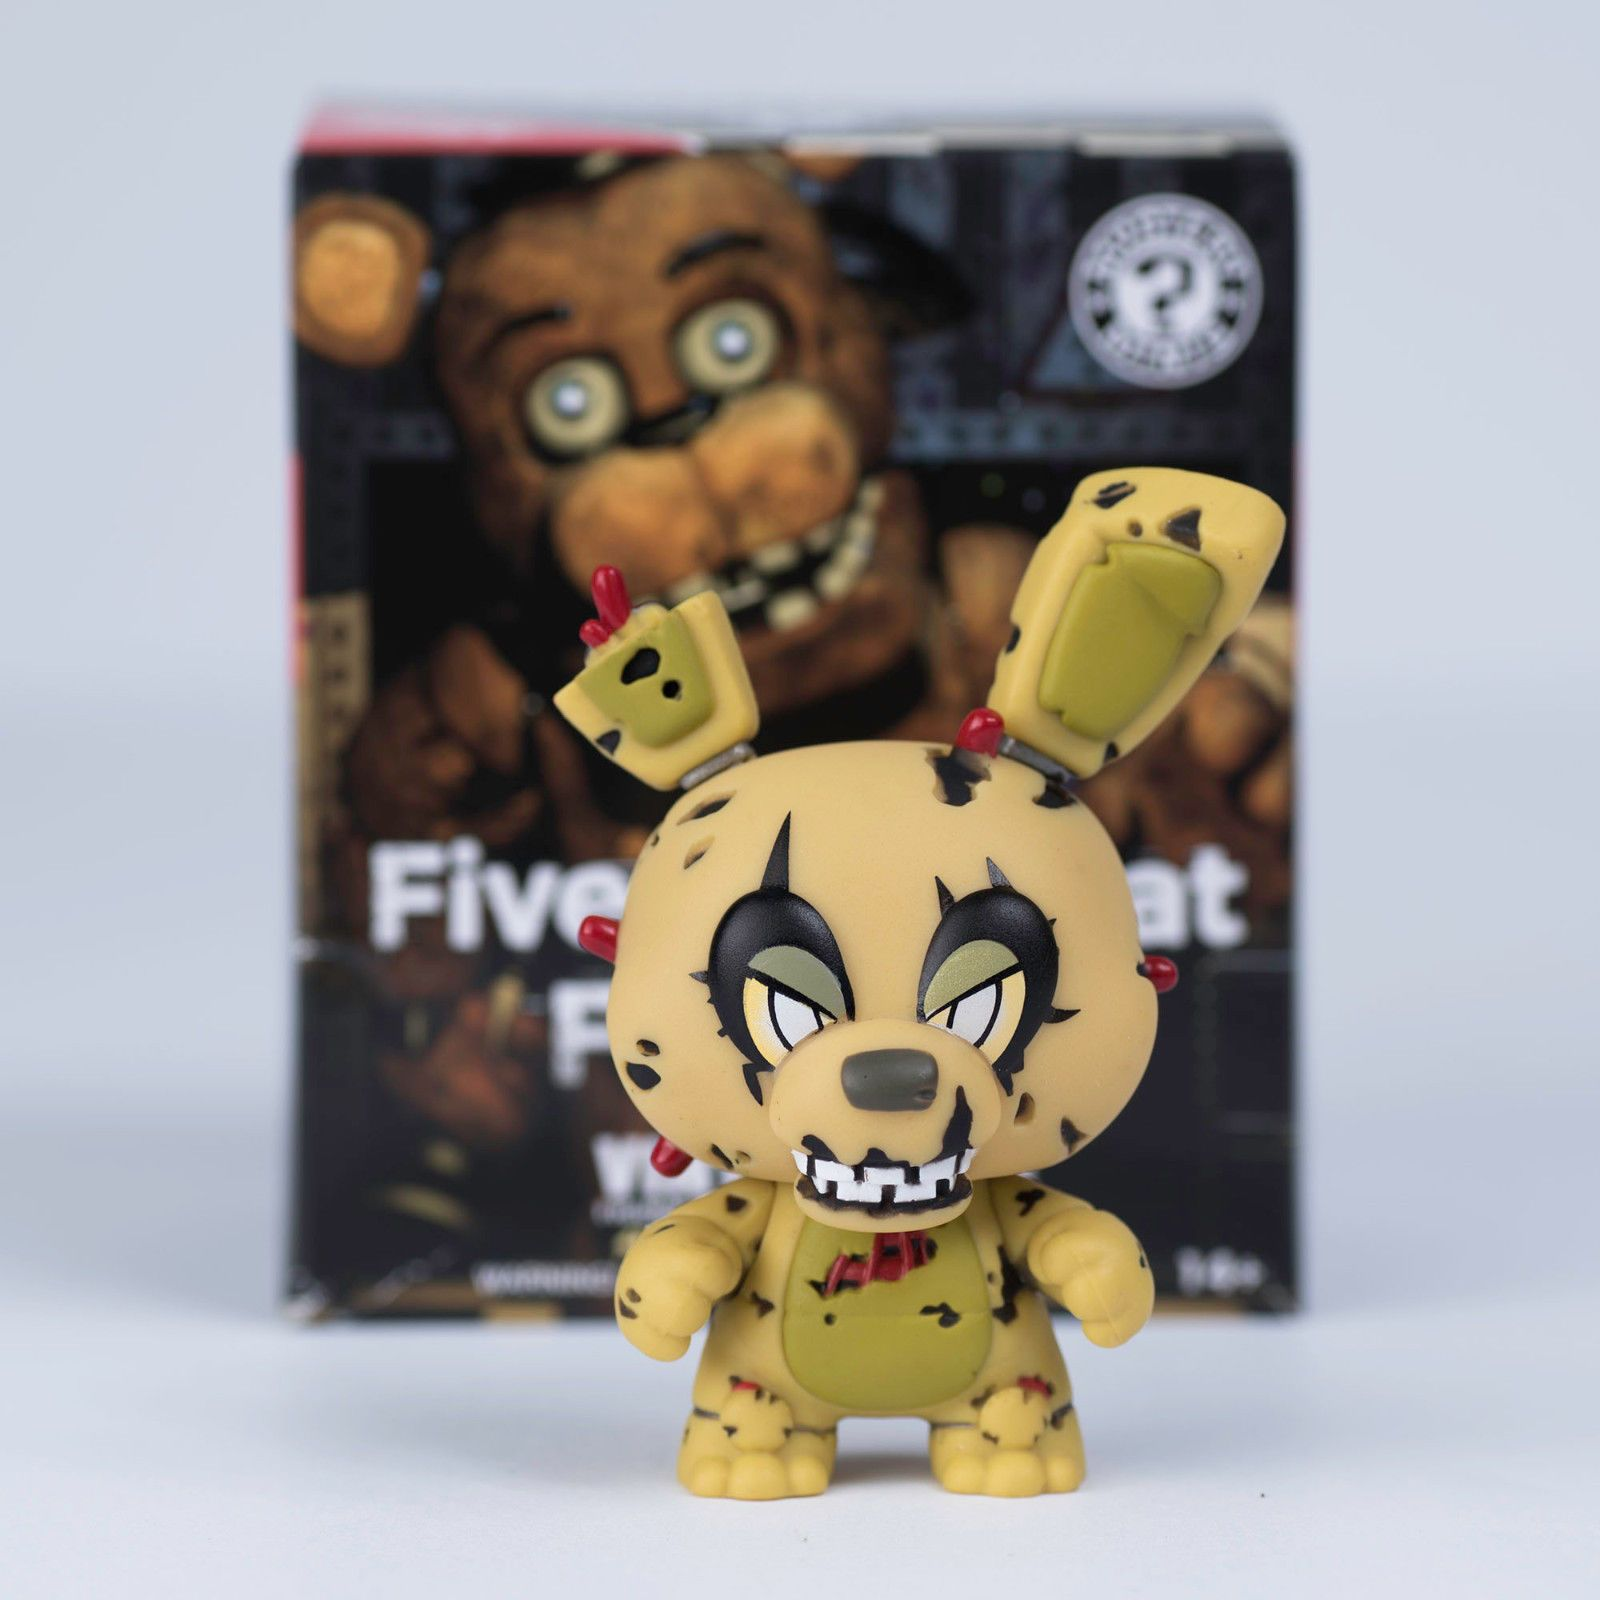 More five nights at freddy s construction sets coming soon - Dettagli Su Five Nights At Freddy S Funko Mistery Minis 6cm Rare Hot Topic Edition